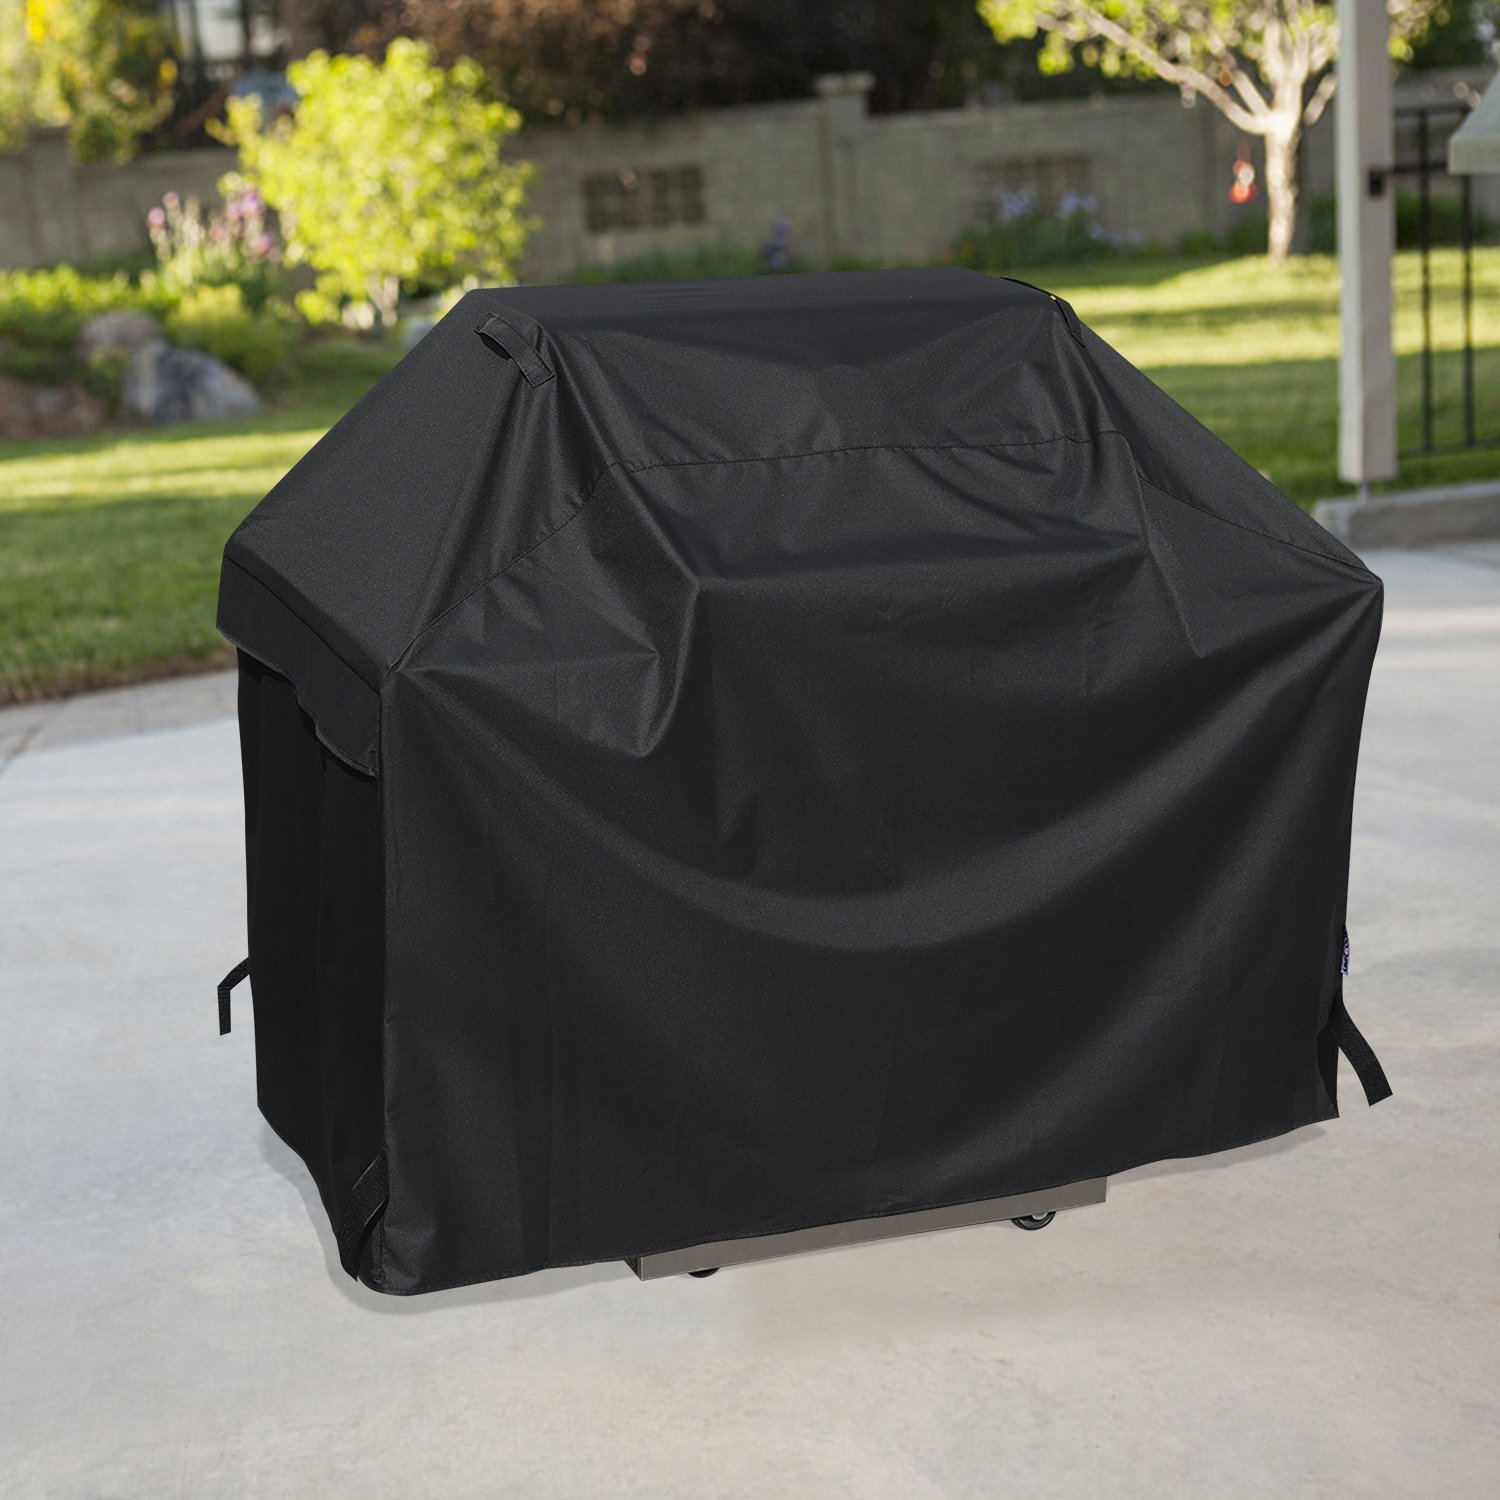 Unicook Heavy Duty Waterproof Barbecue Gas Grill Cover, 65-inch BBQ Cover, Special Fade and UV Resistant Material,Fits Grills of Weber Char-Broil Nexgrill Brinkmann and More Homepro Manufacturing